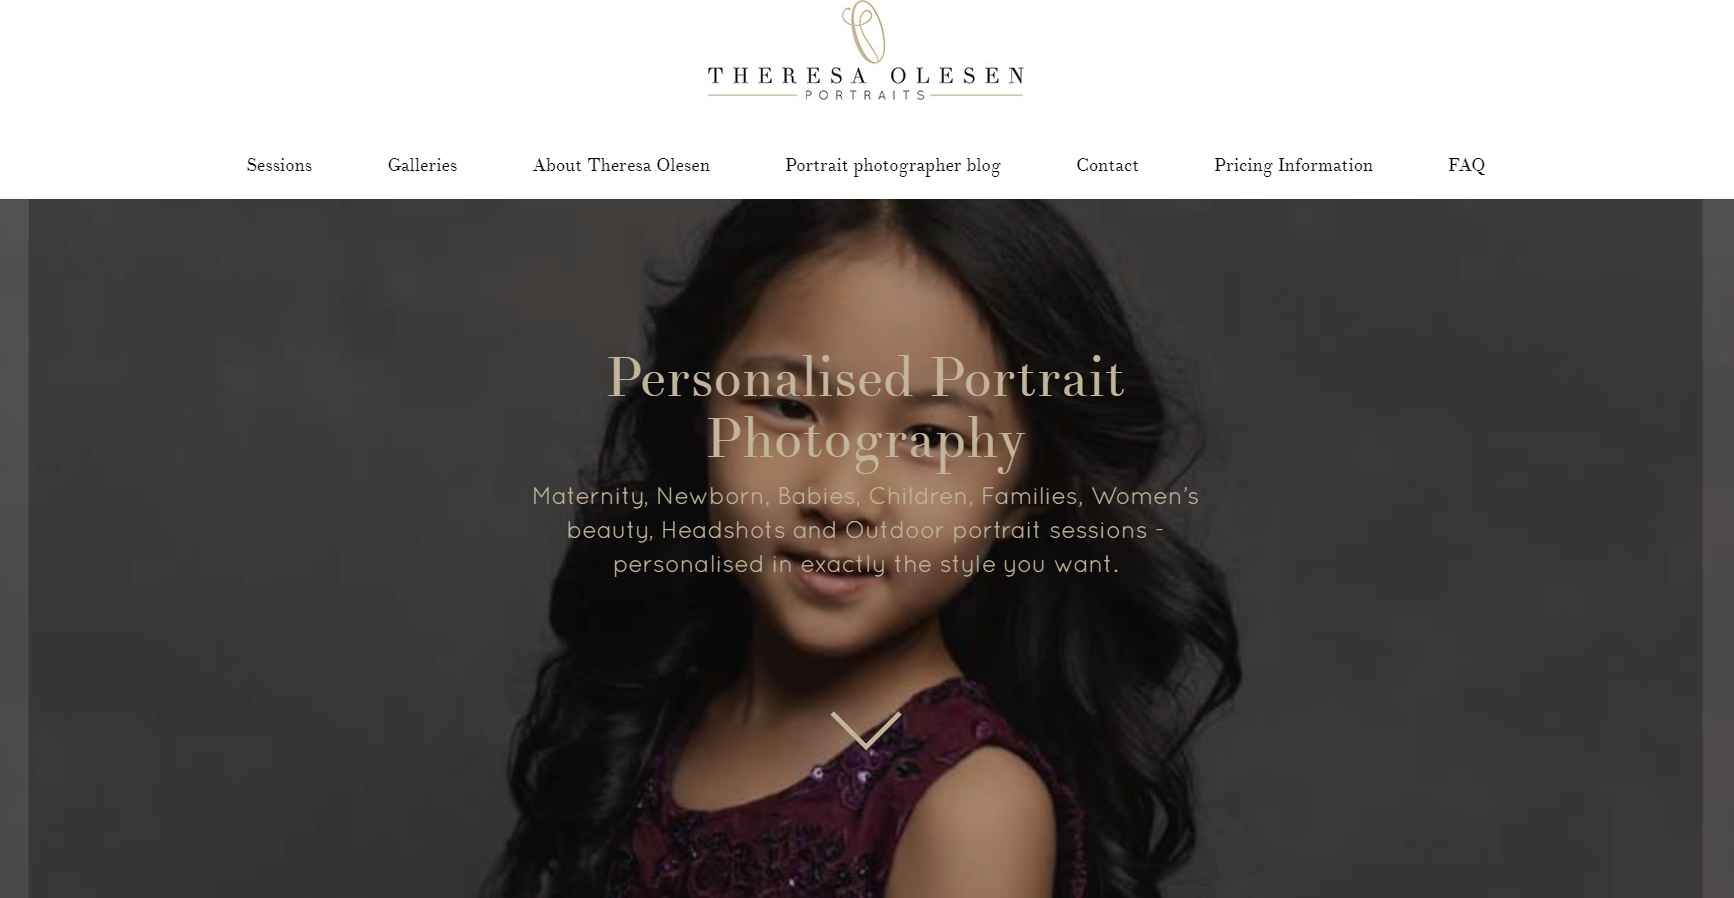 Theresa olesen Top Portrait Photography Studios in Singapore